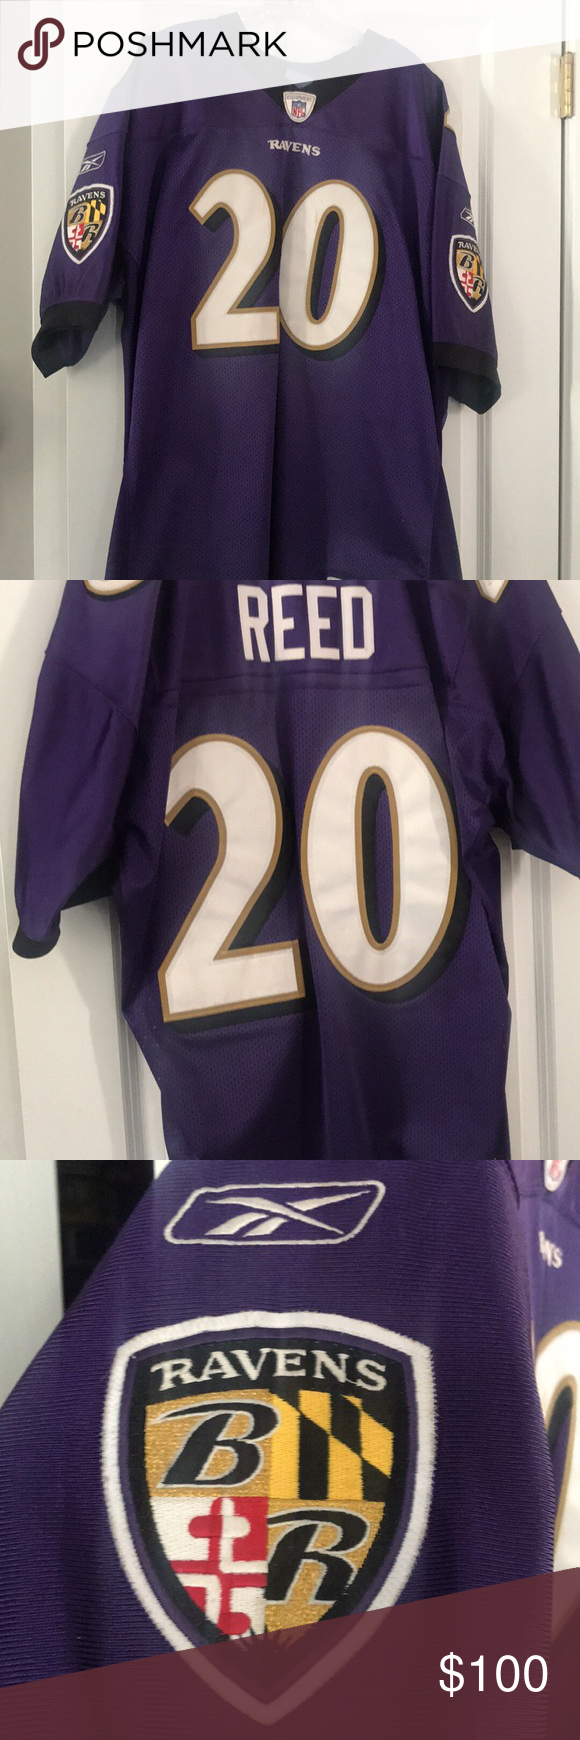 low priced 7cd55 e3384 Men's authentic Reebok Ed Reed Jersey Authentic jersey of ...